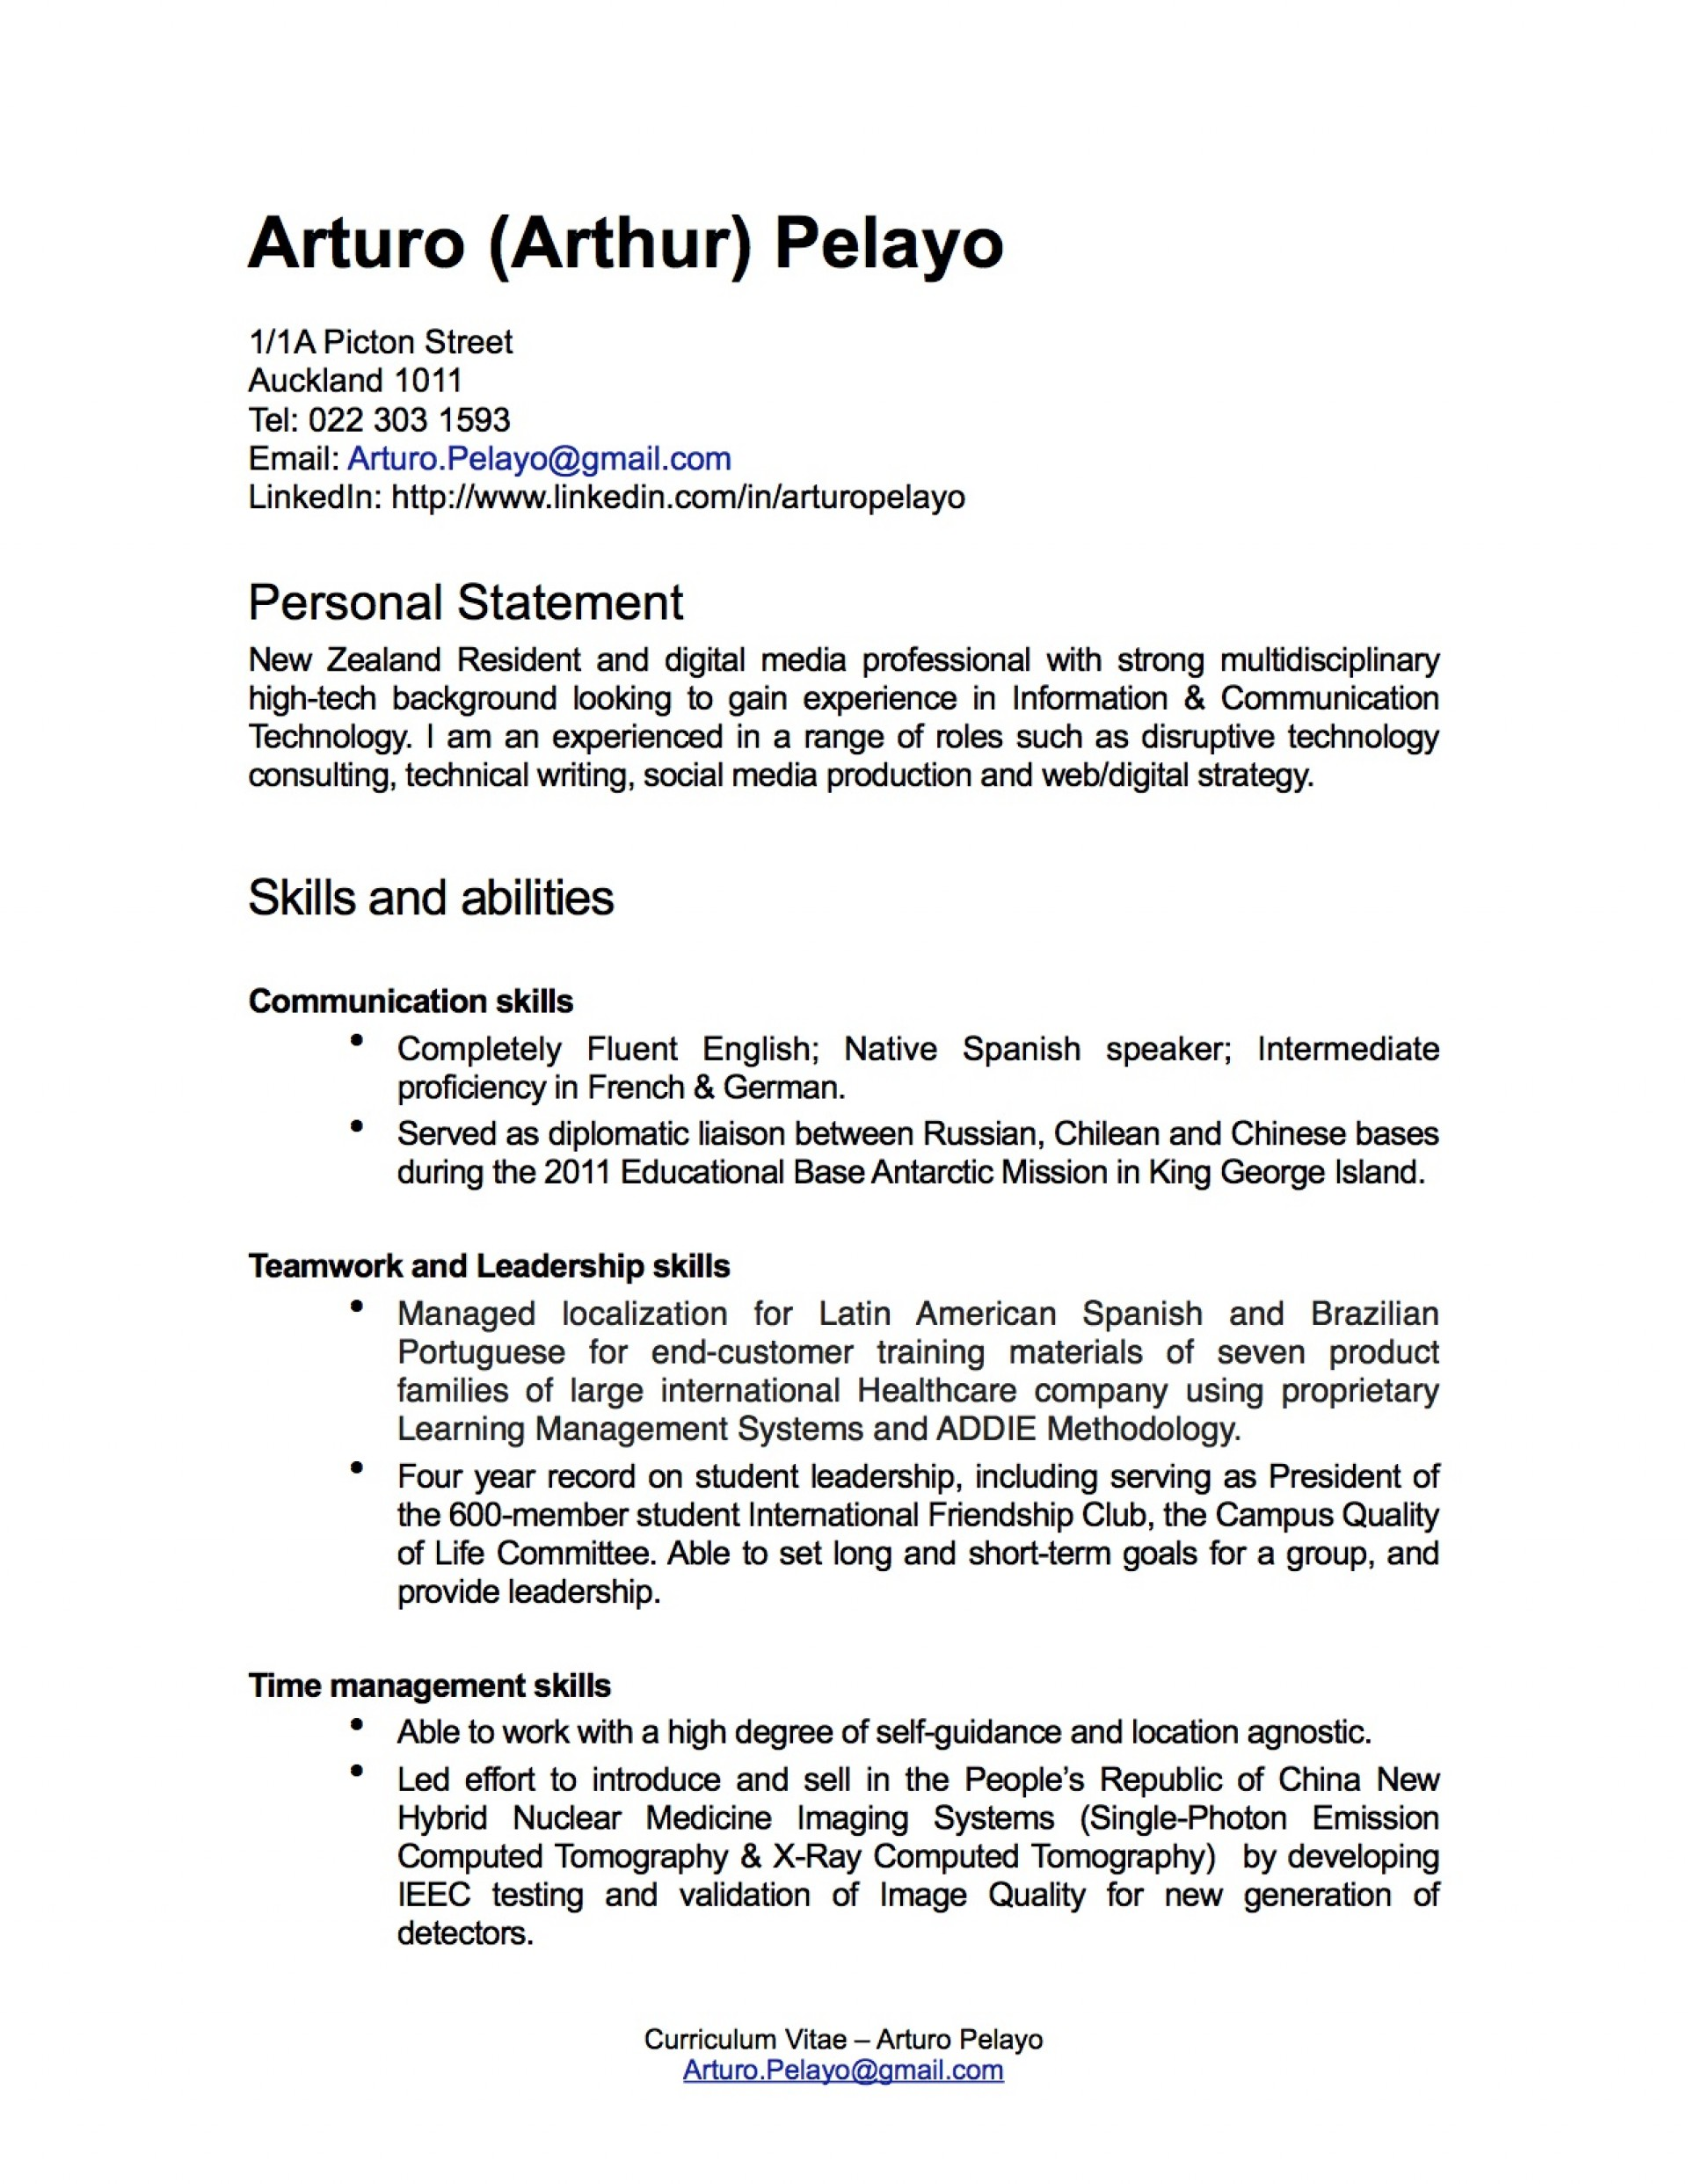 001 Teamwork Essays Term Paper On Self Reflective Reading And Writing Pekayo Resume Nz Functional May2 Critical Fearsome Essay Conclusion Questions Medical School 1920